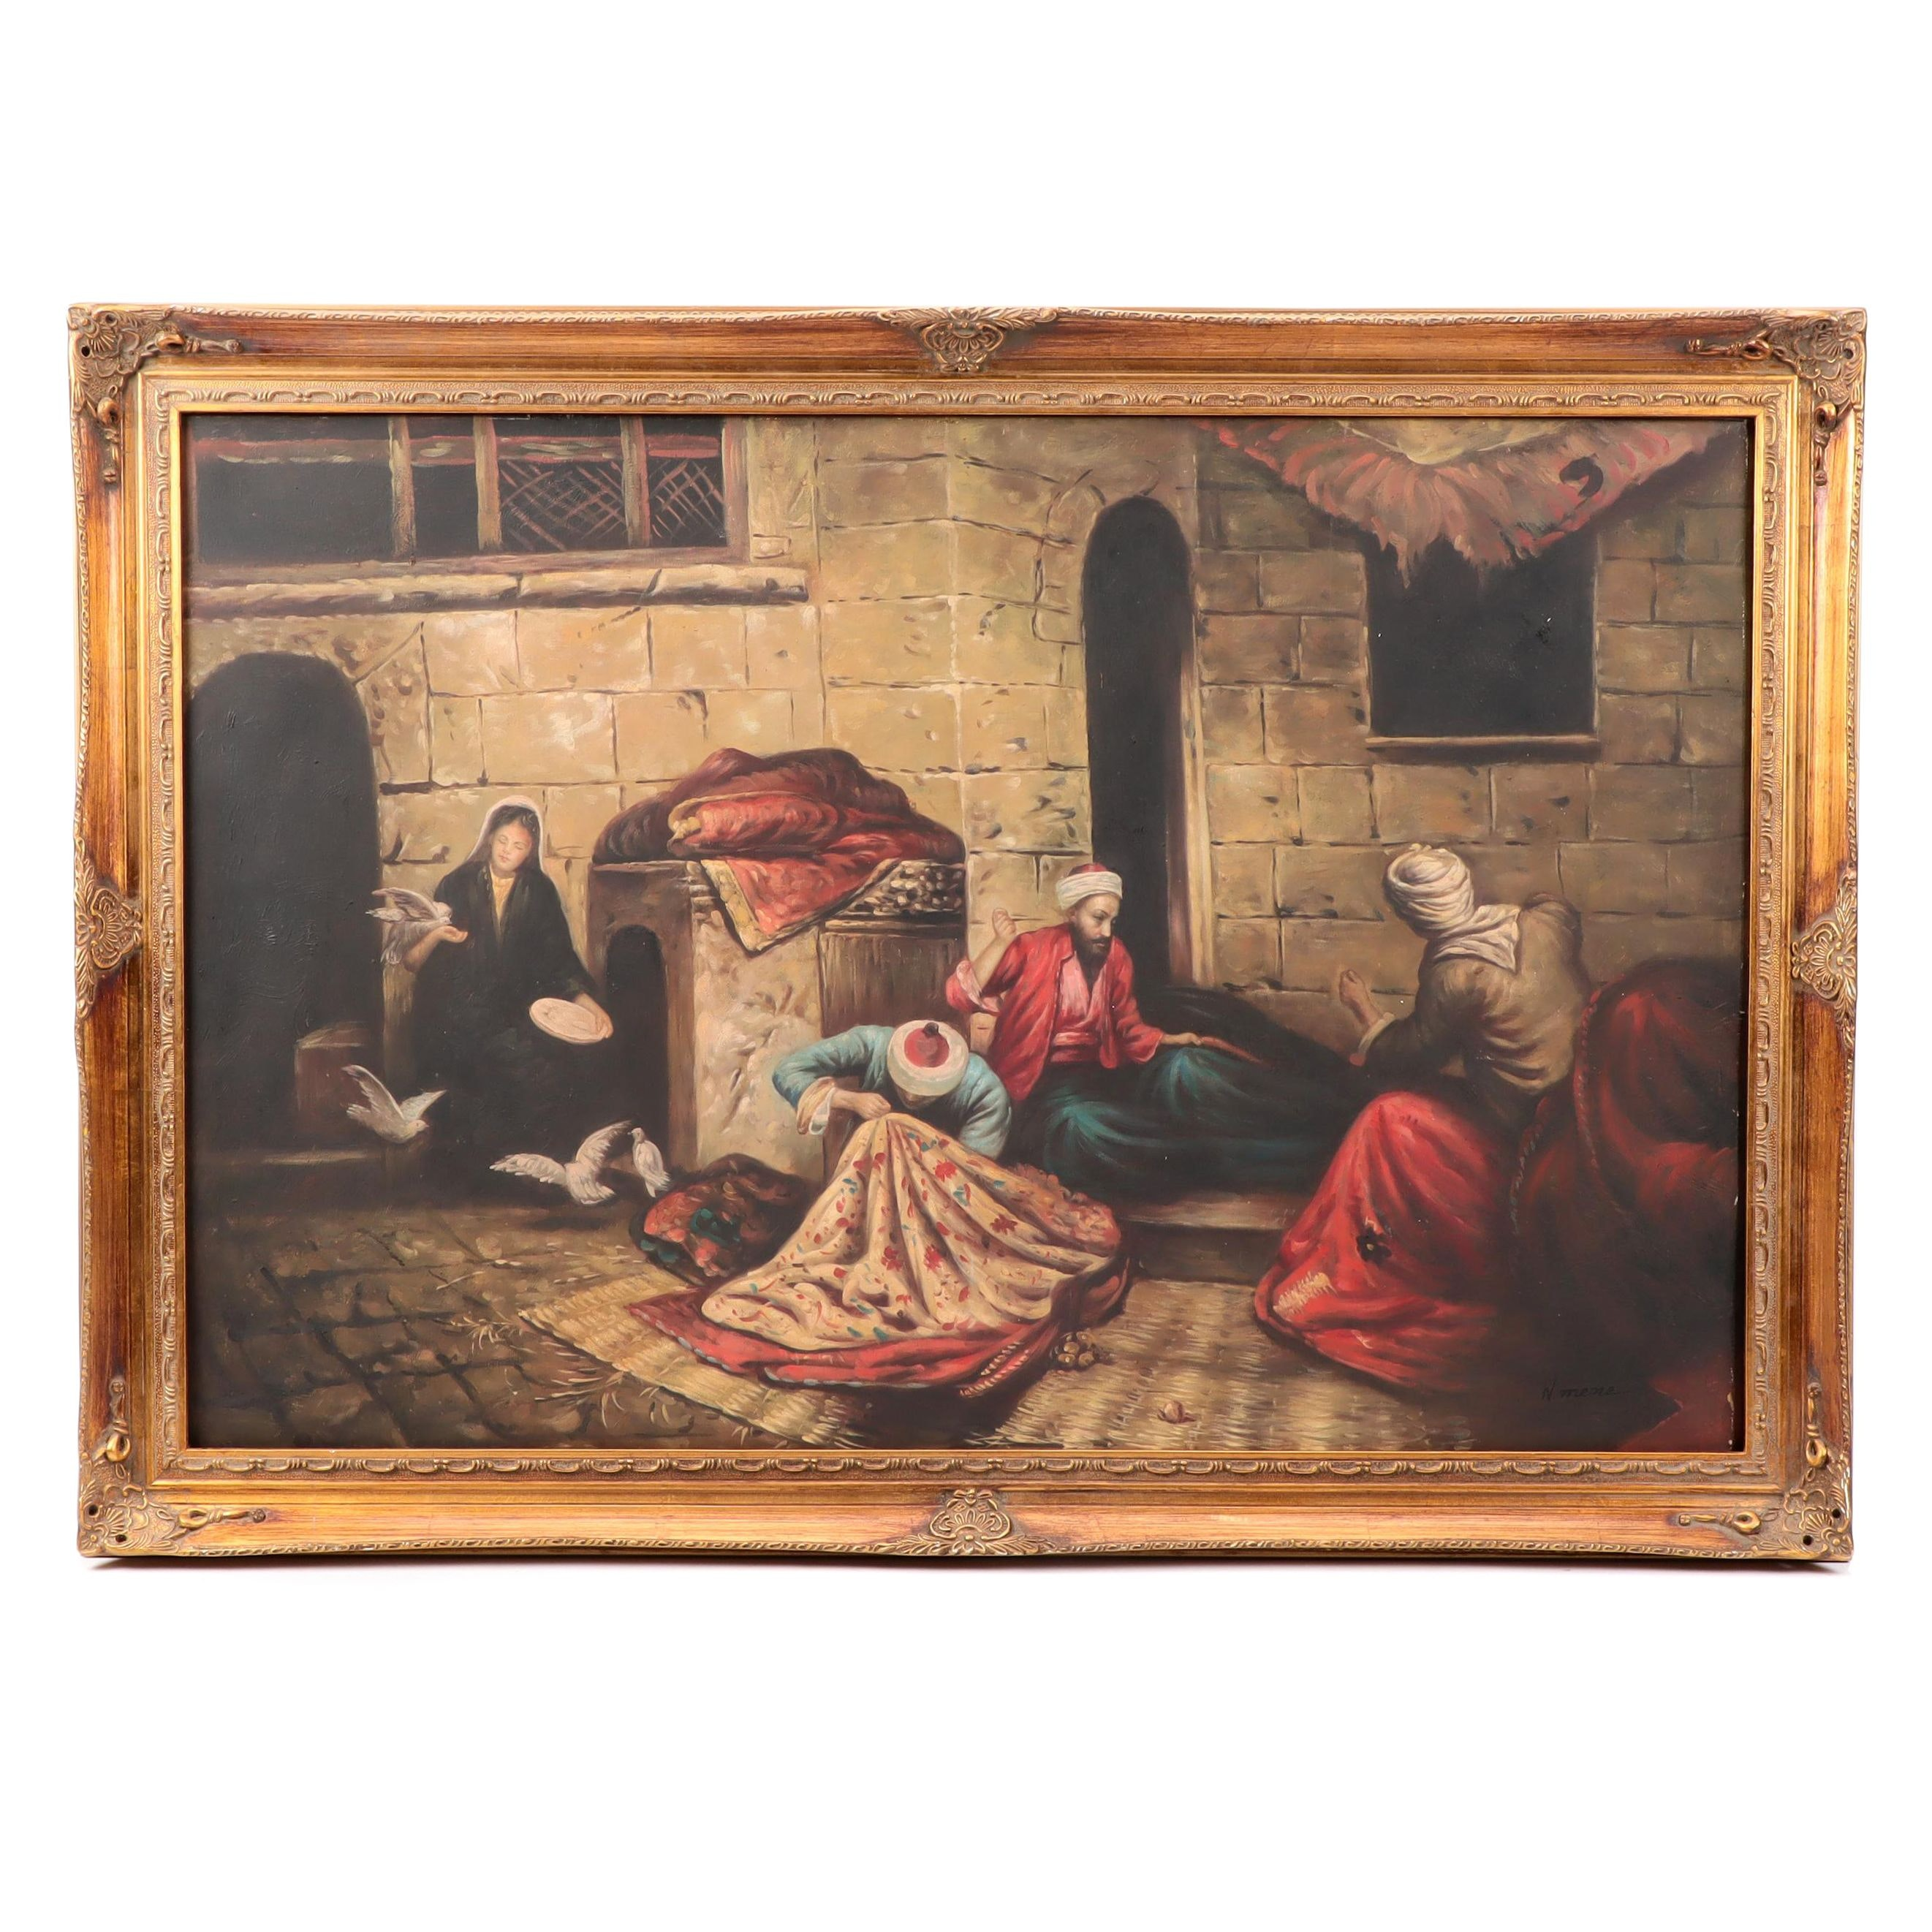 N. Mene Oil Painting of Indo-Persian Style Genre Scene